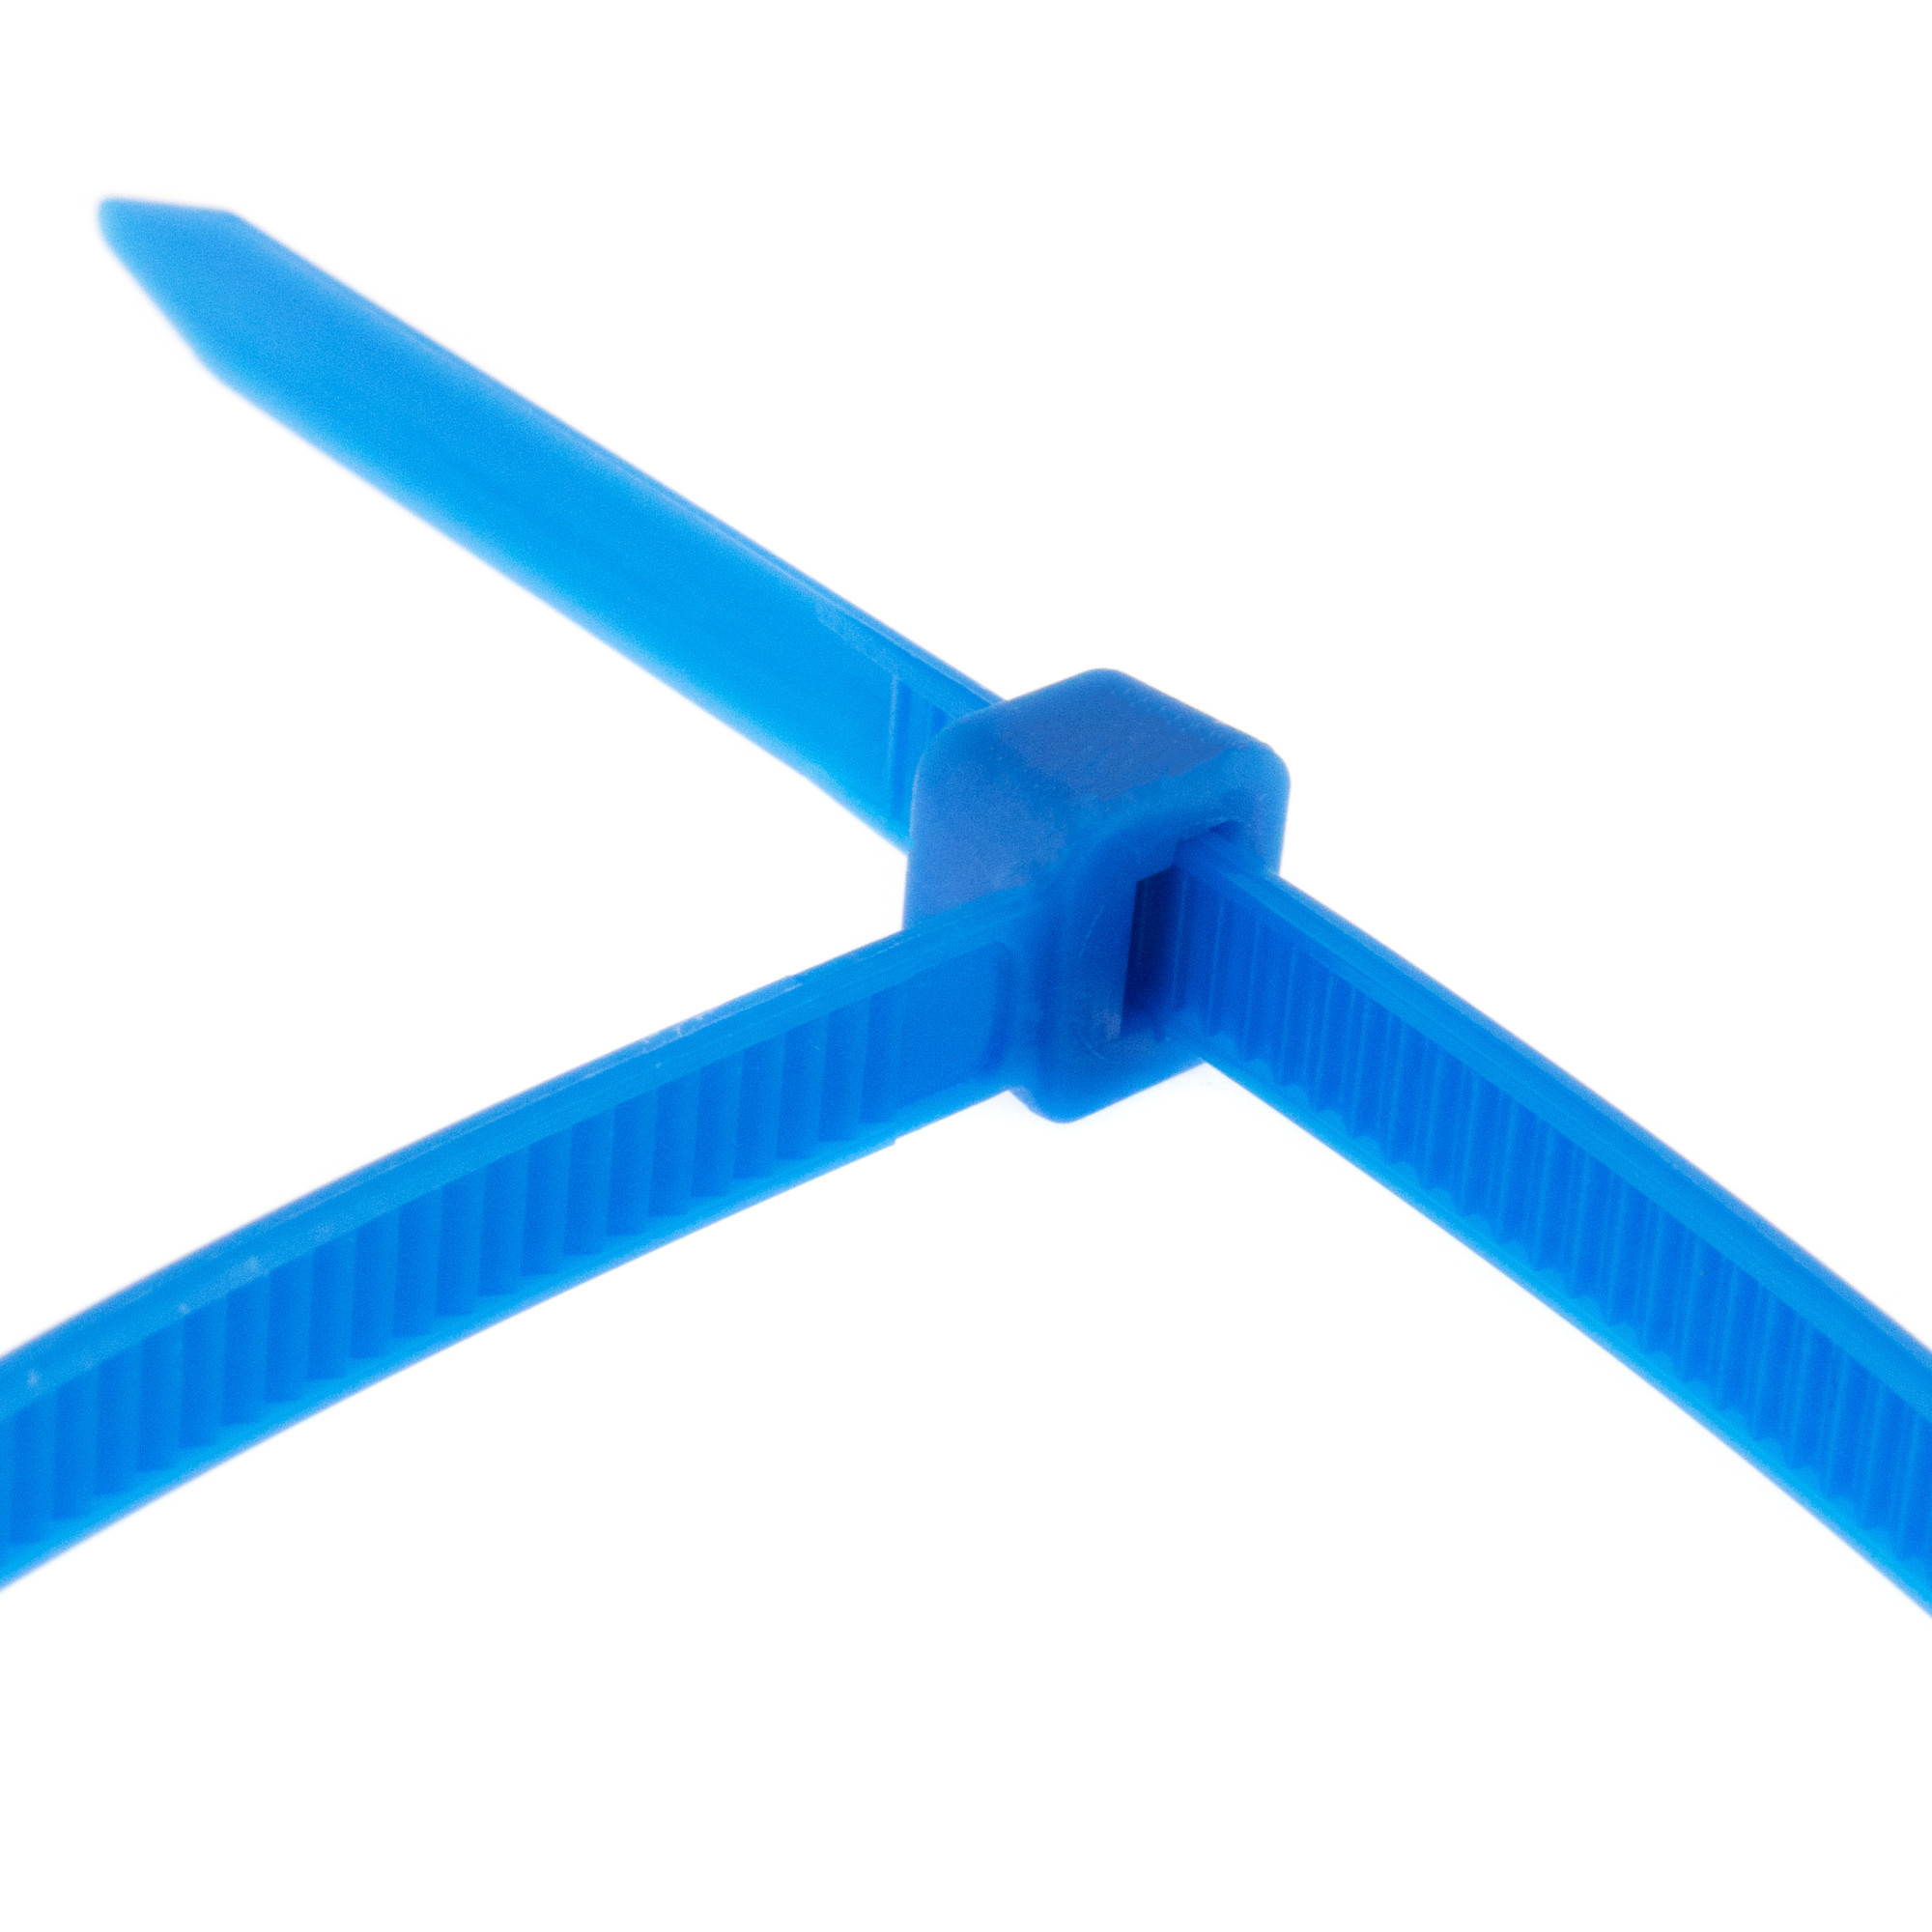 Cable tie self-locking 380 x 4,8mm, blue, 100PCS